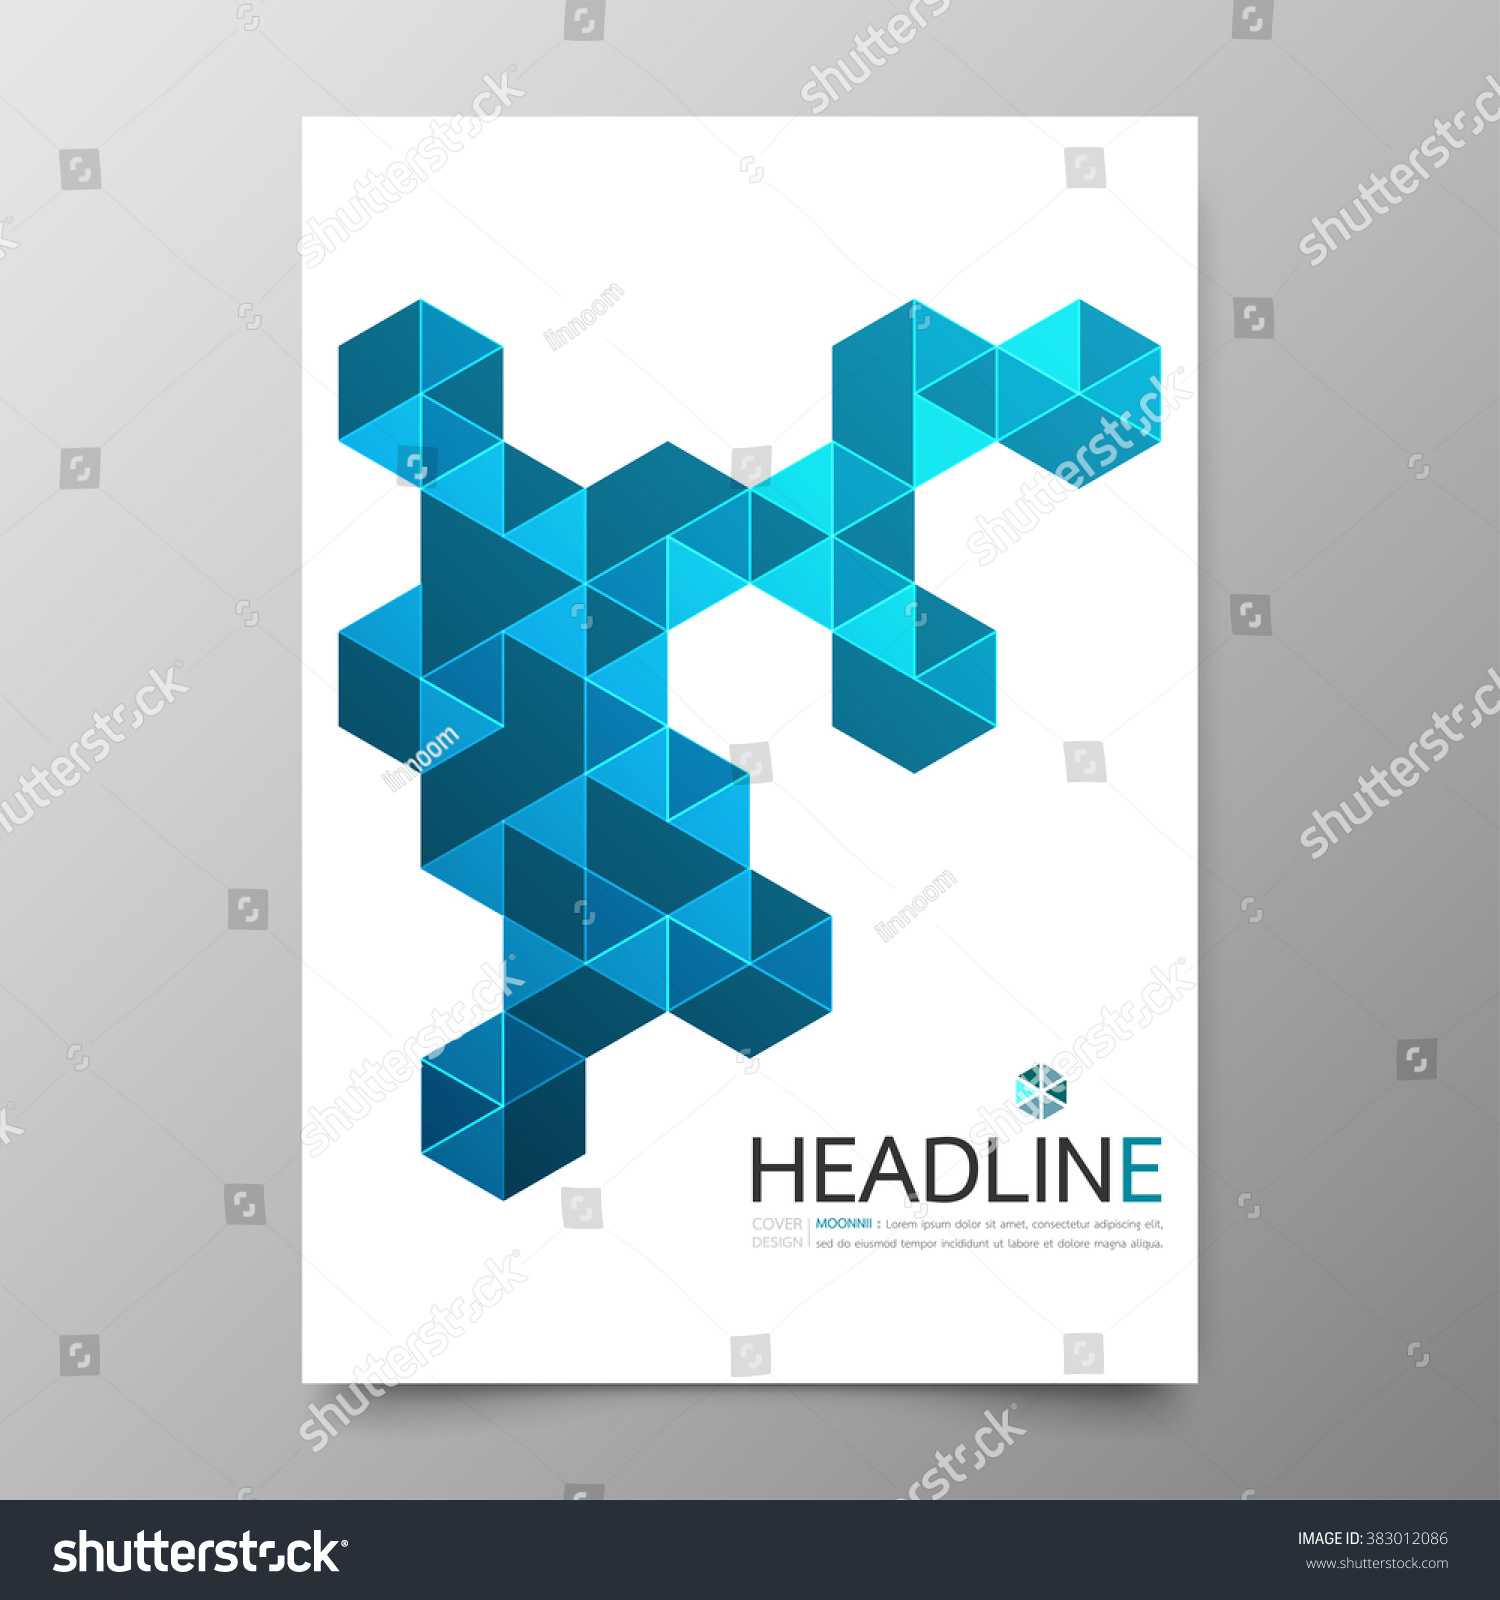 business annual report cover template designgeometric stock vector business annual report cover template design geometric triangle blue abstract background layout in a4